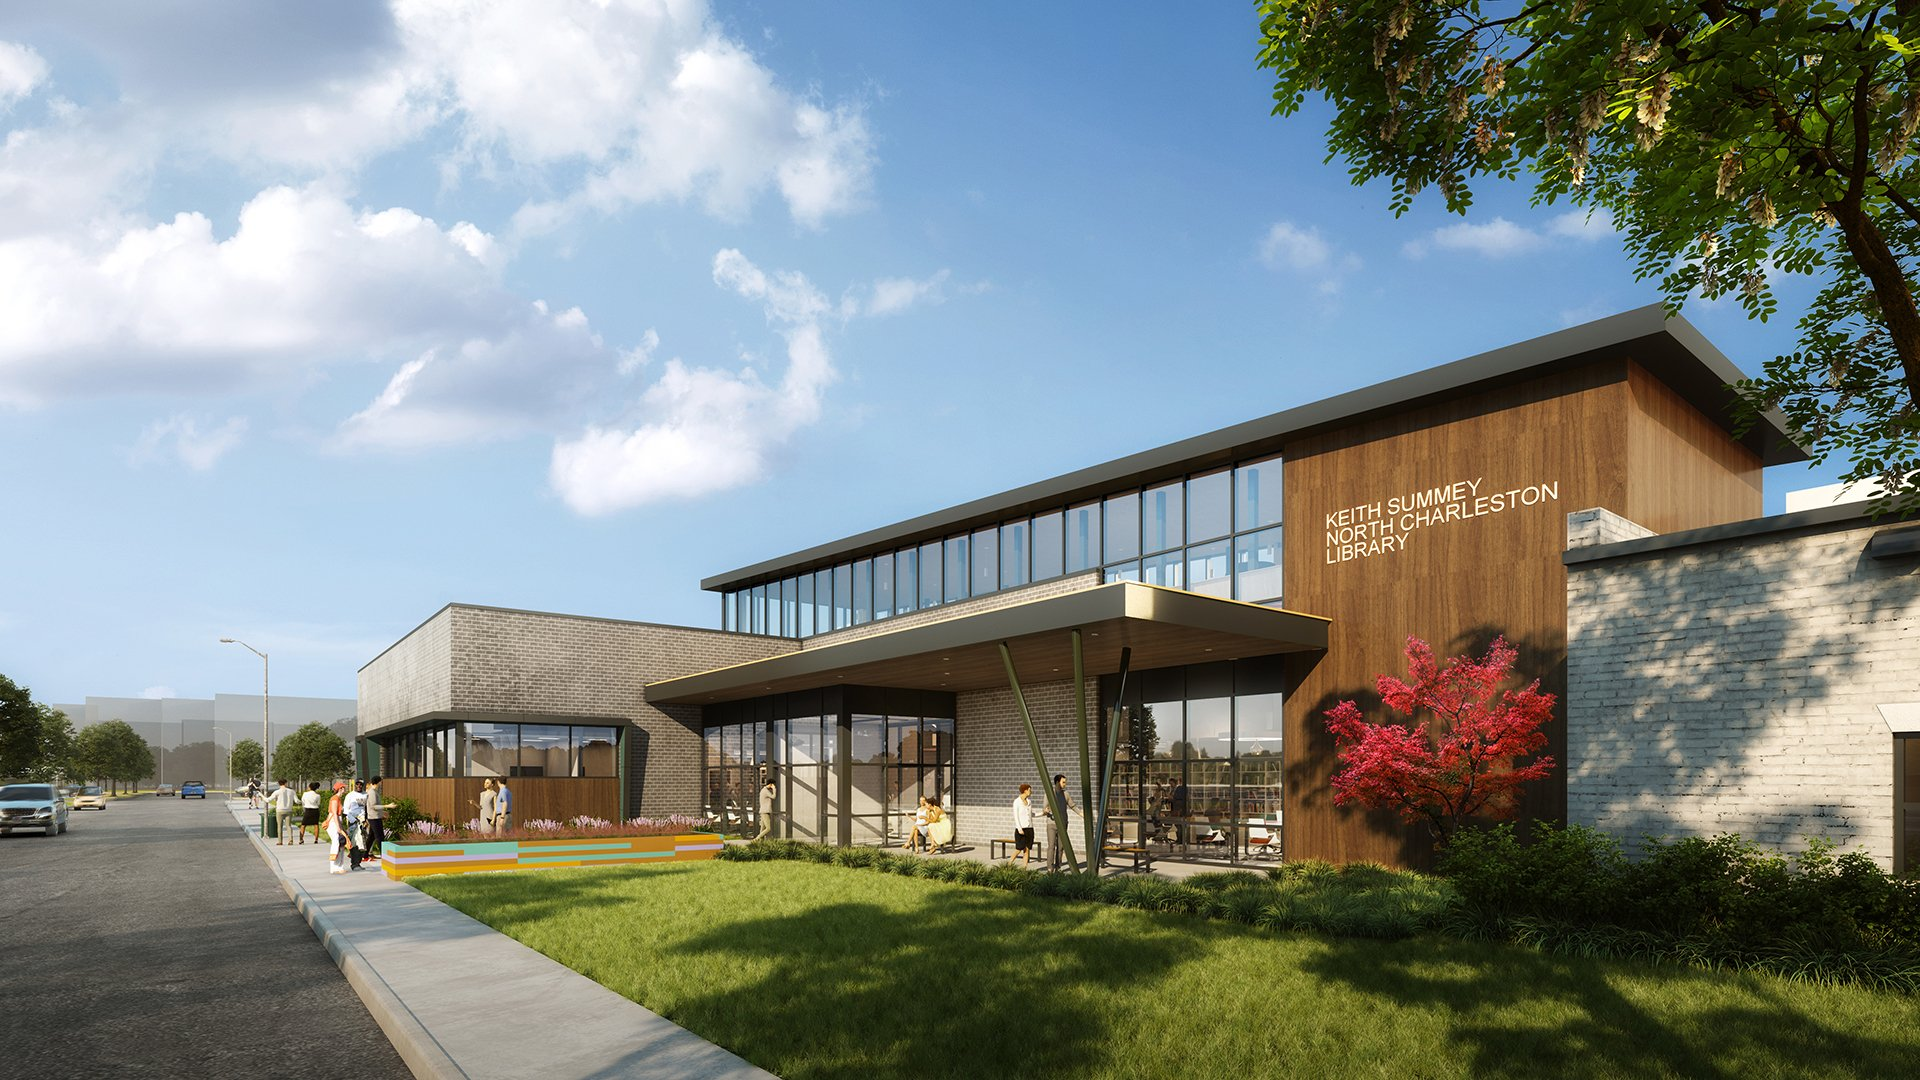 Rendering of the Keith Summey Library, North Charleston